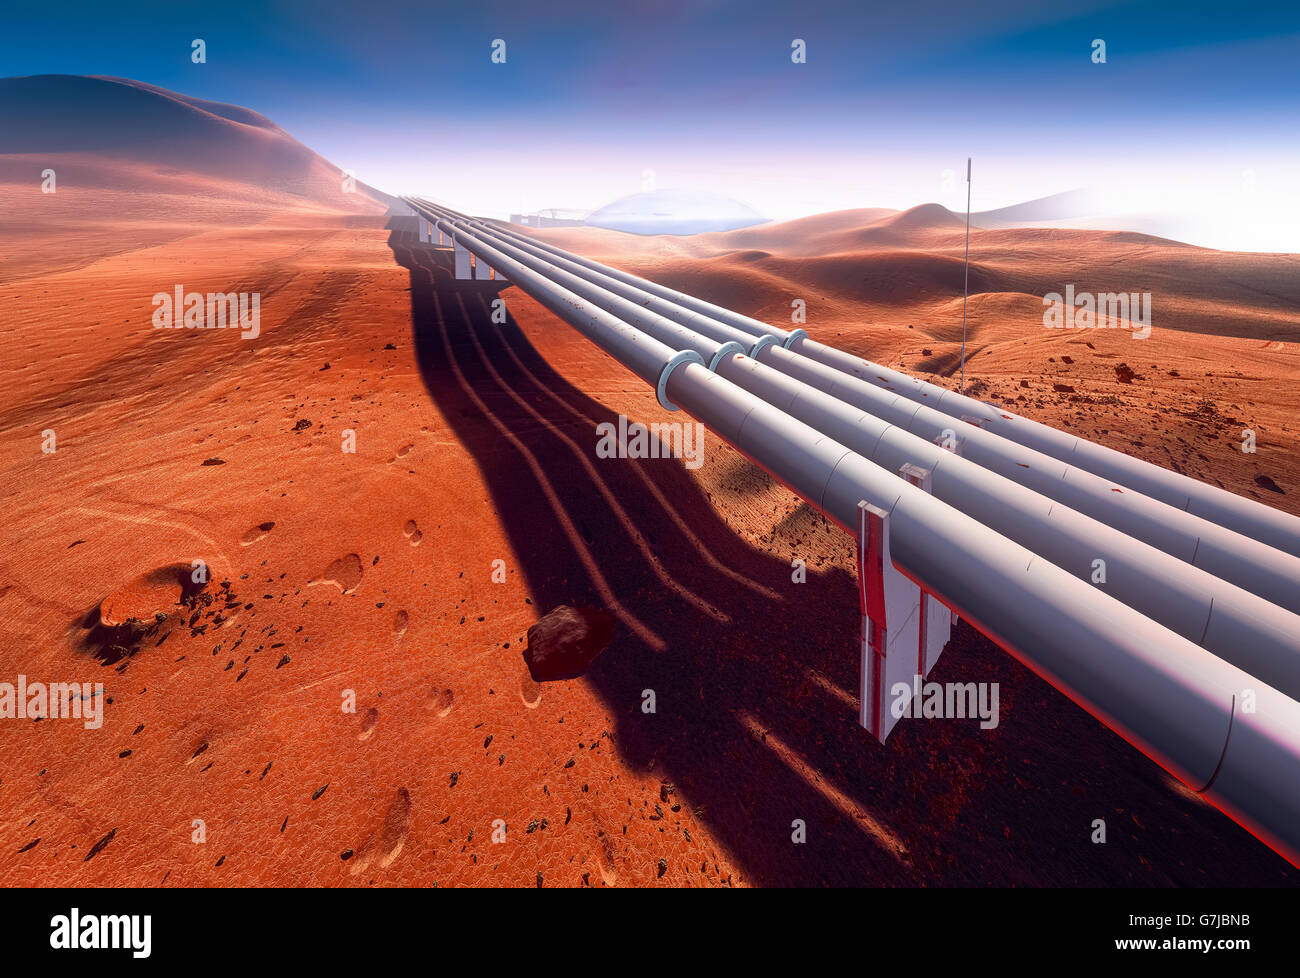 Pipeline on Mars Stock Photo